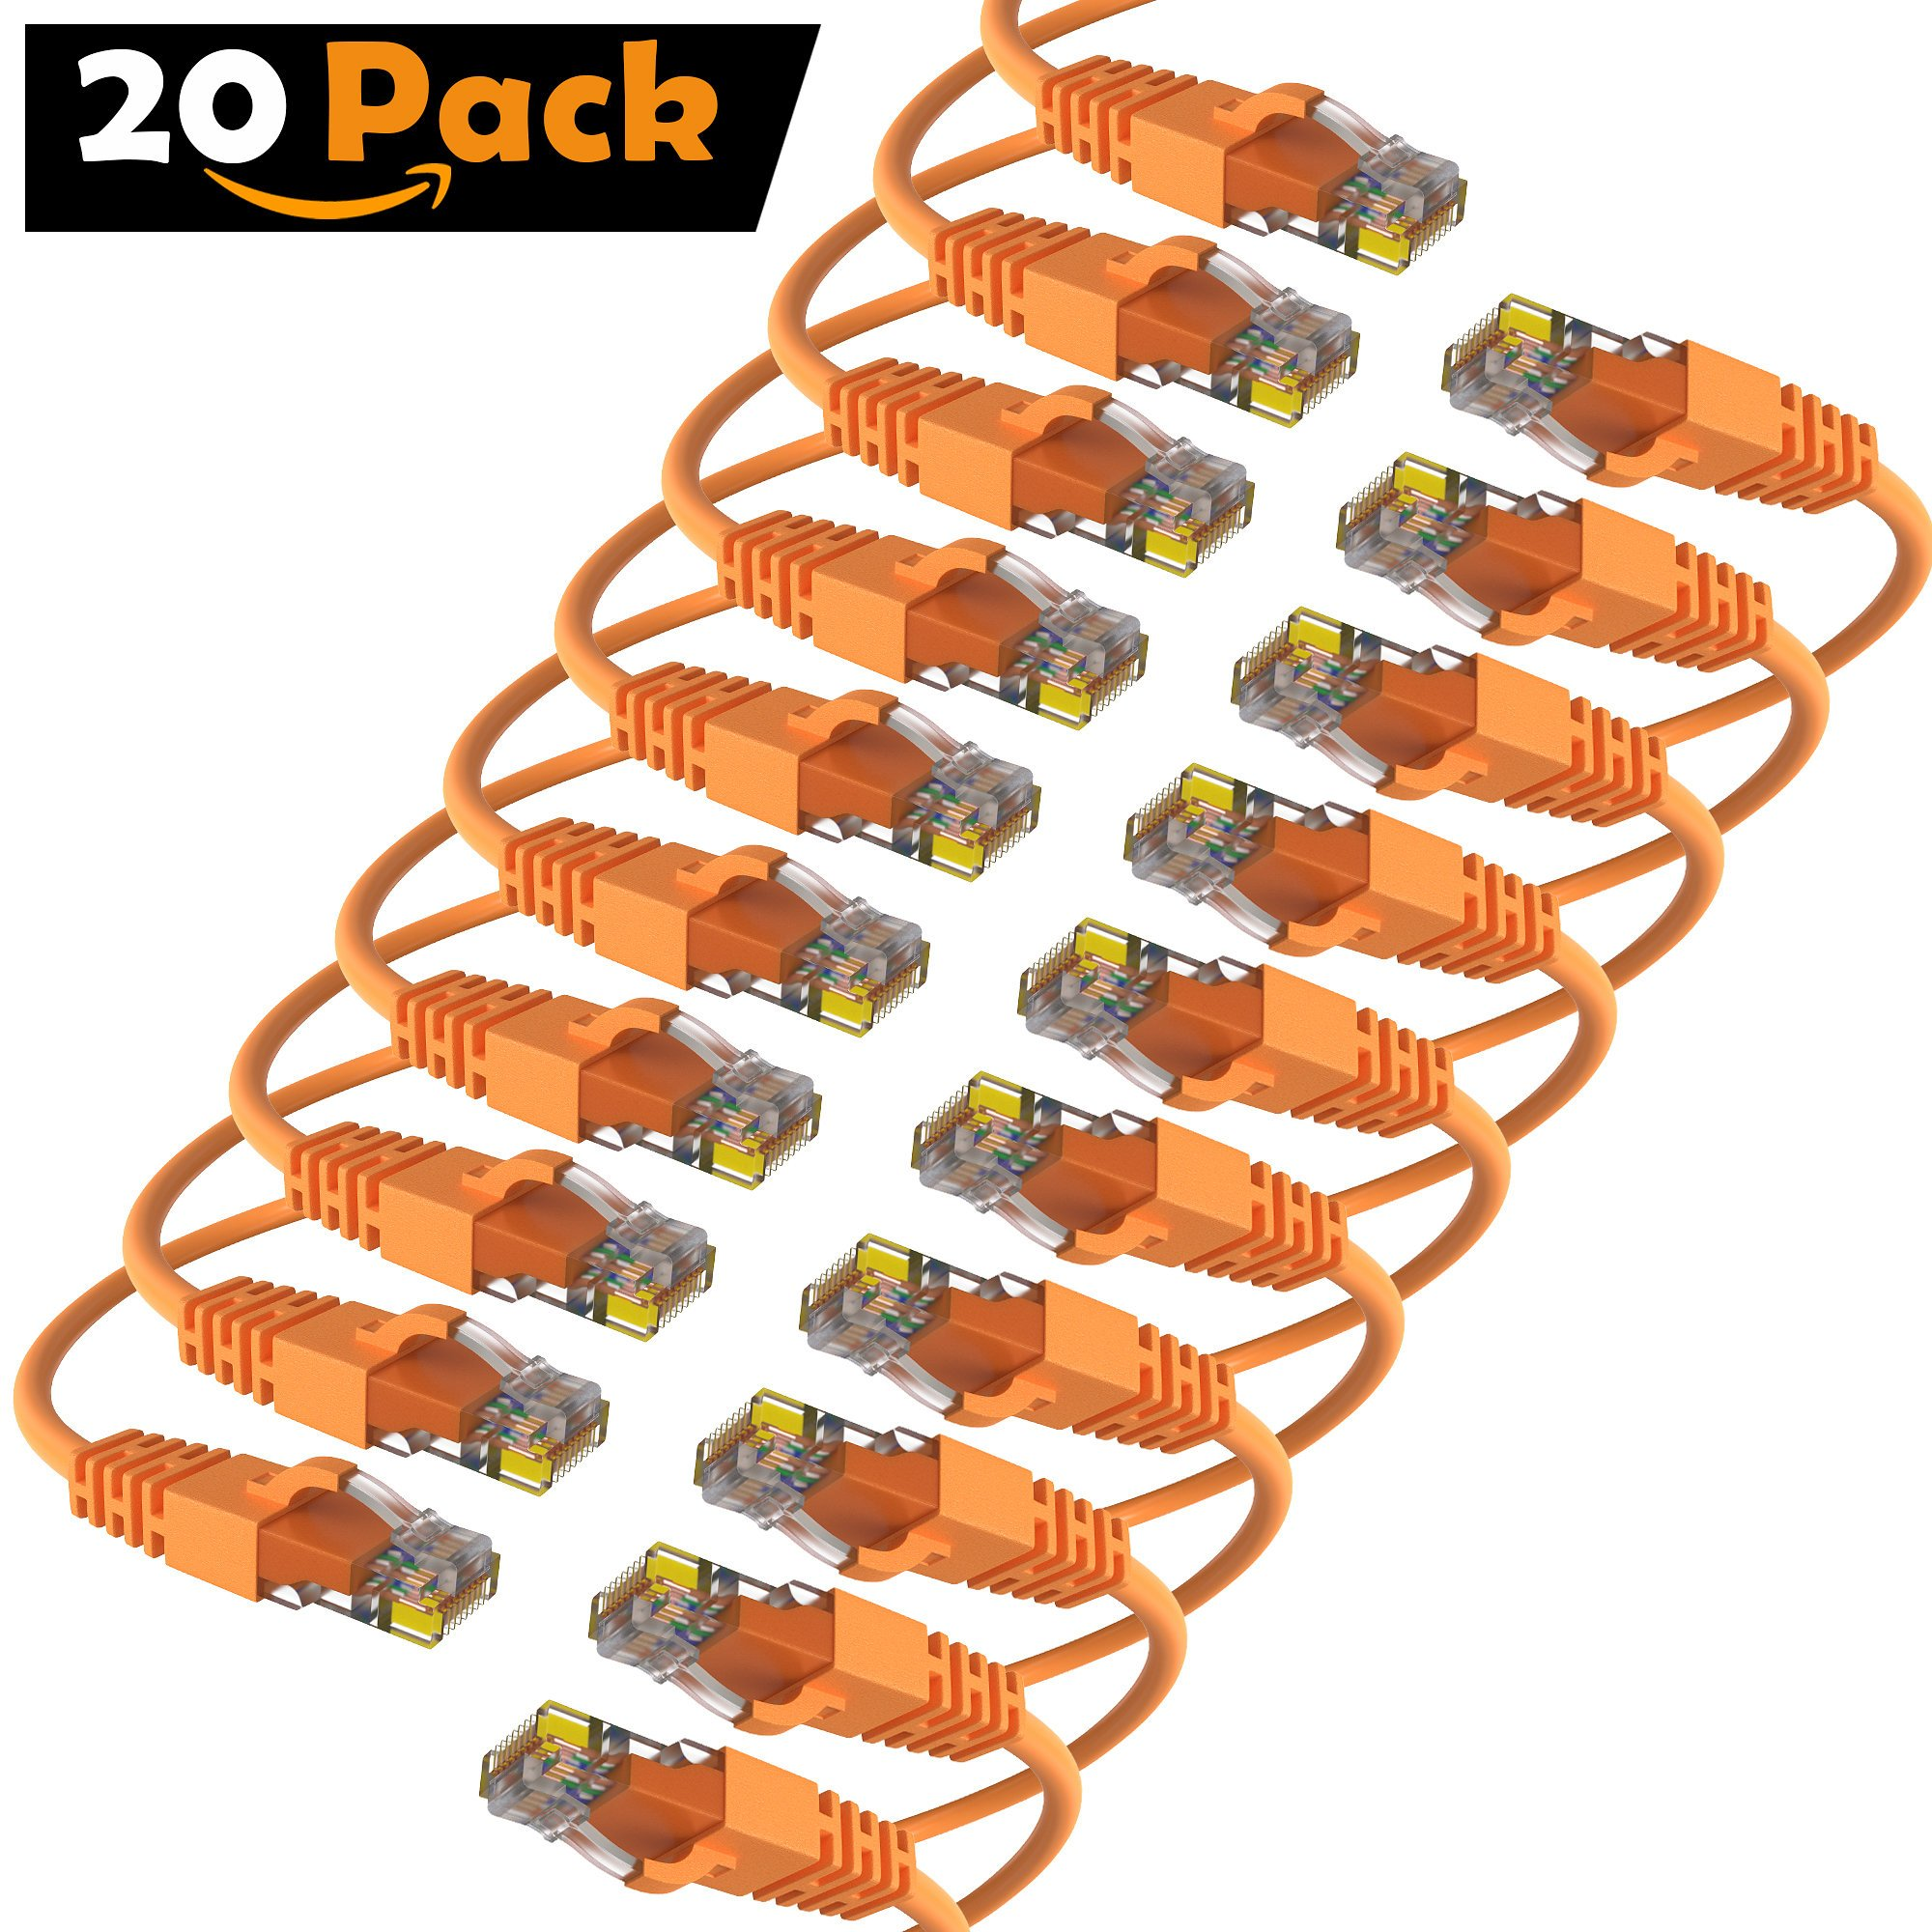 Maximm Cat6 Snagless Ethernet Cable - 15 Feet - Orange - [20 Pack] - Pure Copper - UL Listed - Cable Ties Included